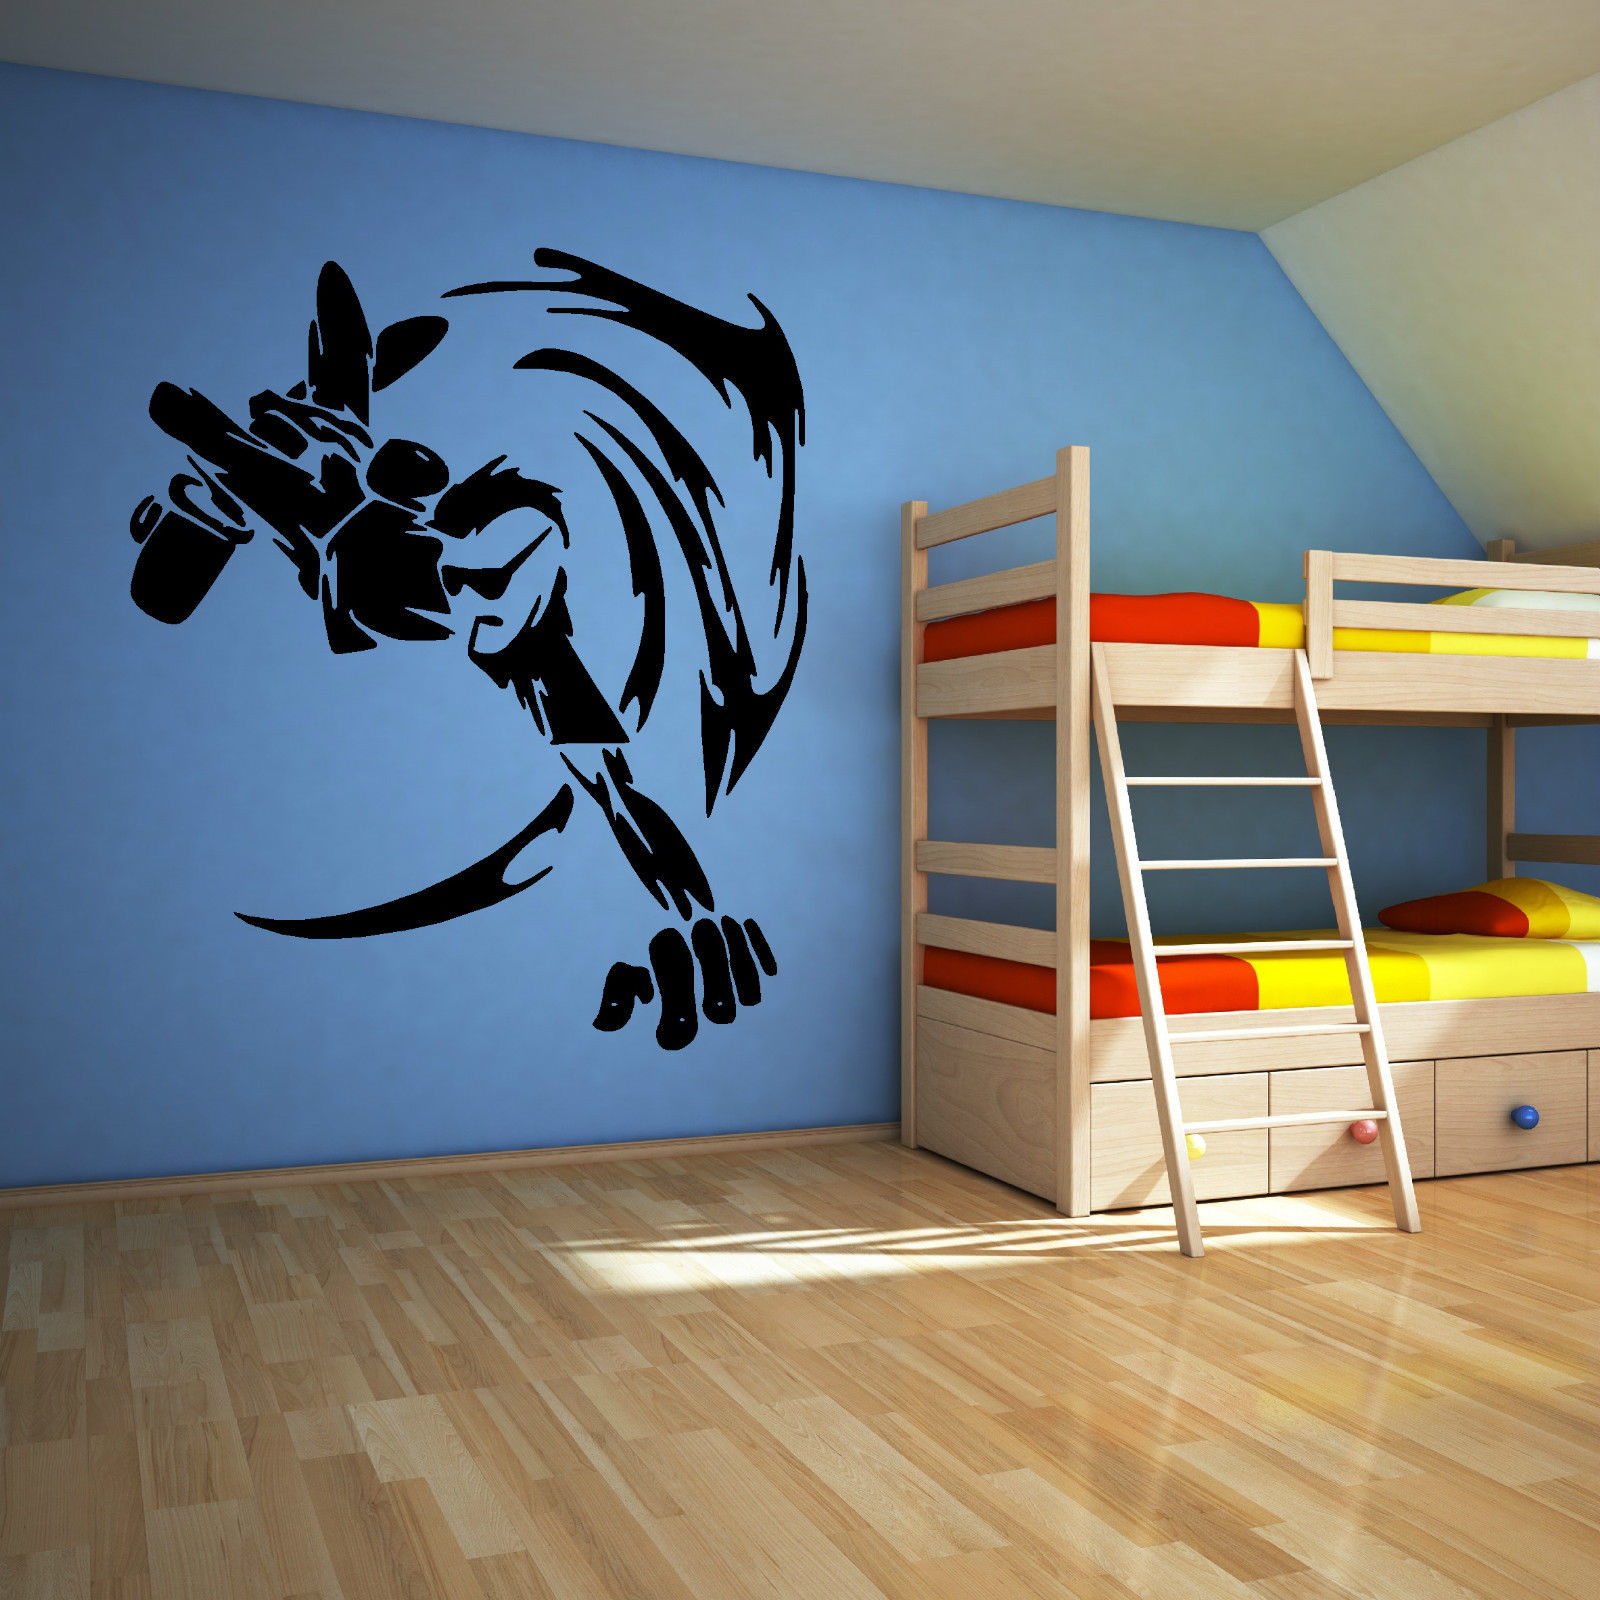 Compare Prices on Skateboard Wall Art for Boys- Online Shopping ...